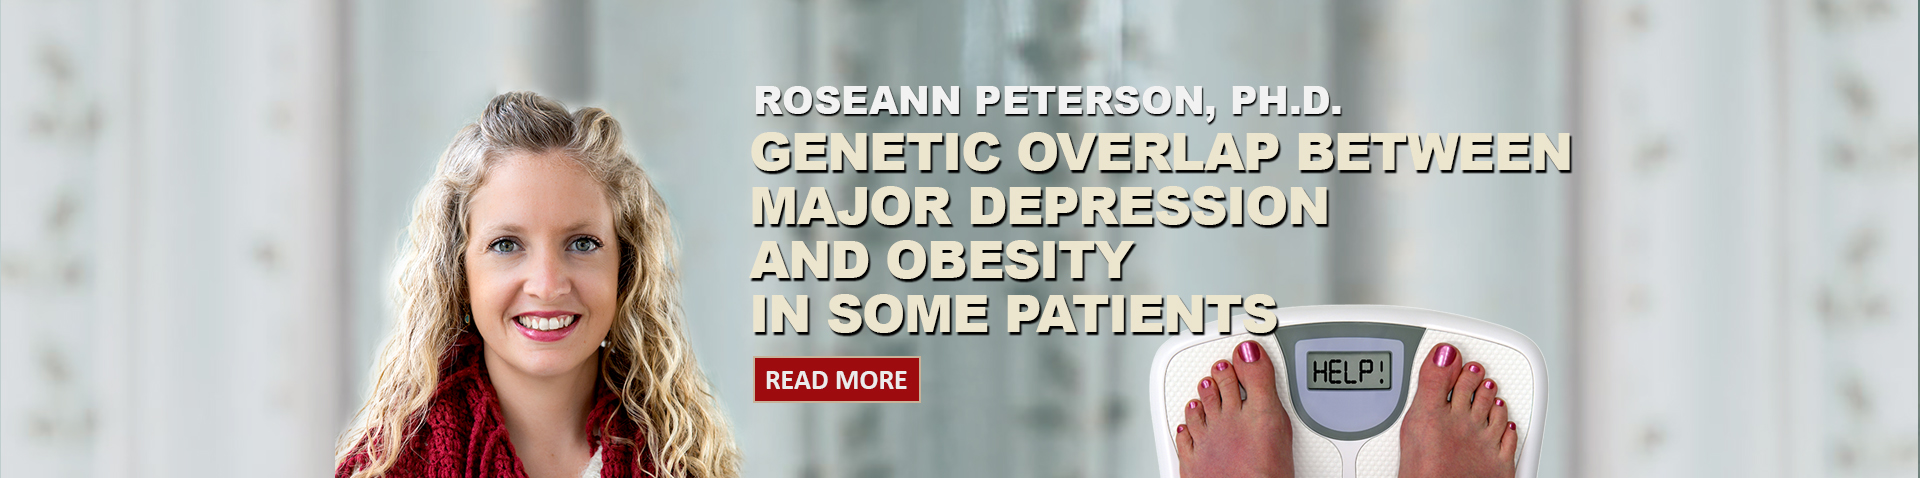 Genetic Overlap Between Major Depression and Obesity In Some Patients